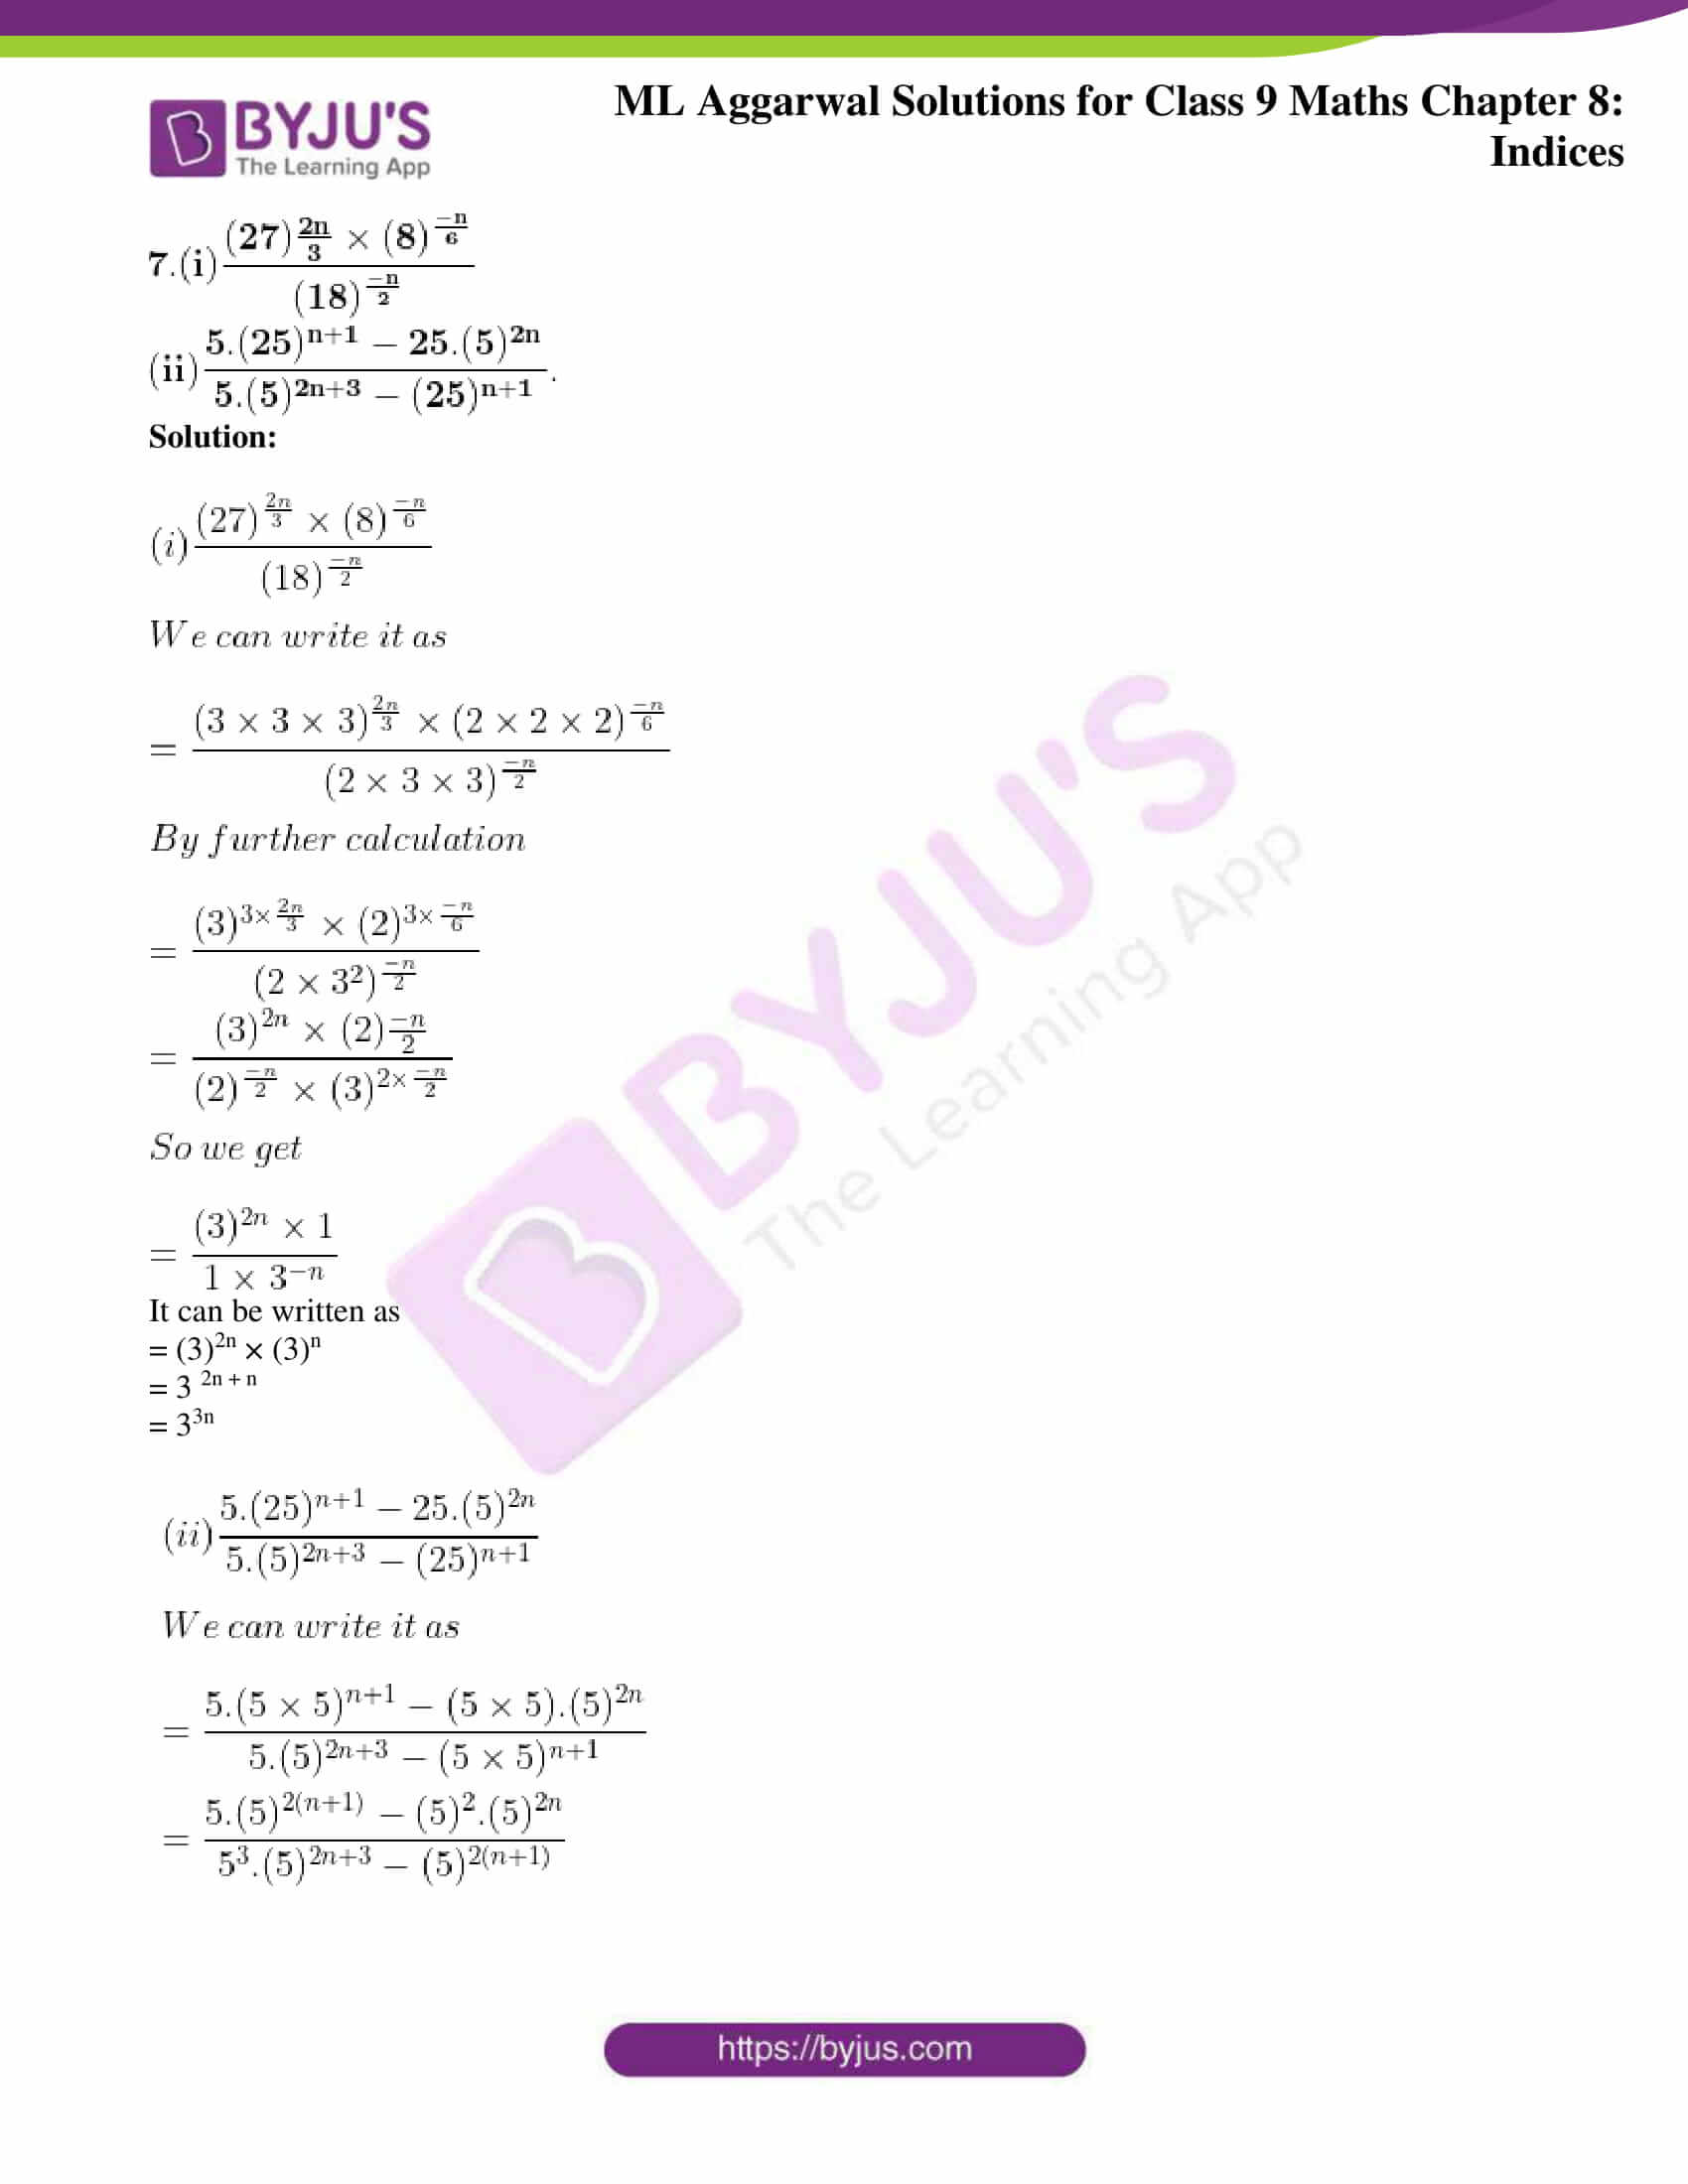 ml aggarwal solutions for class 9 maths chapter 8 04